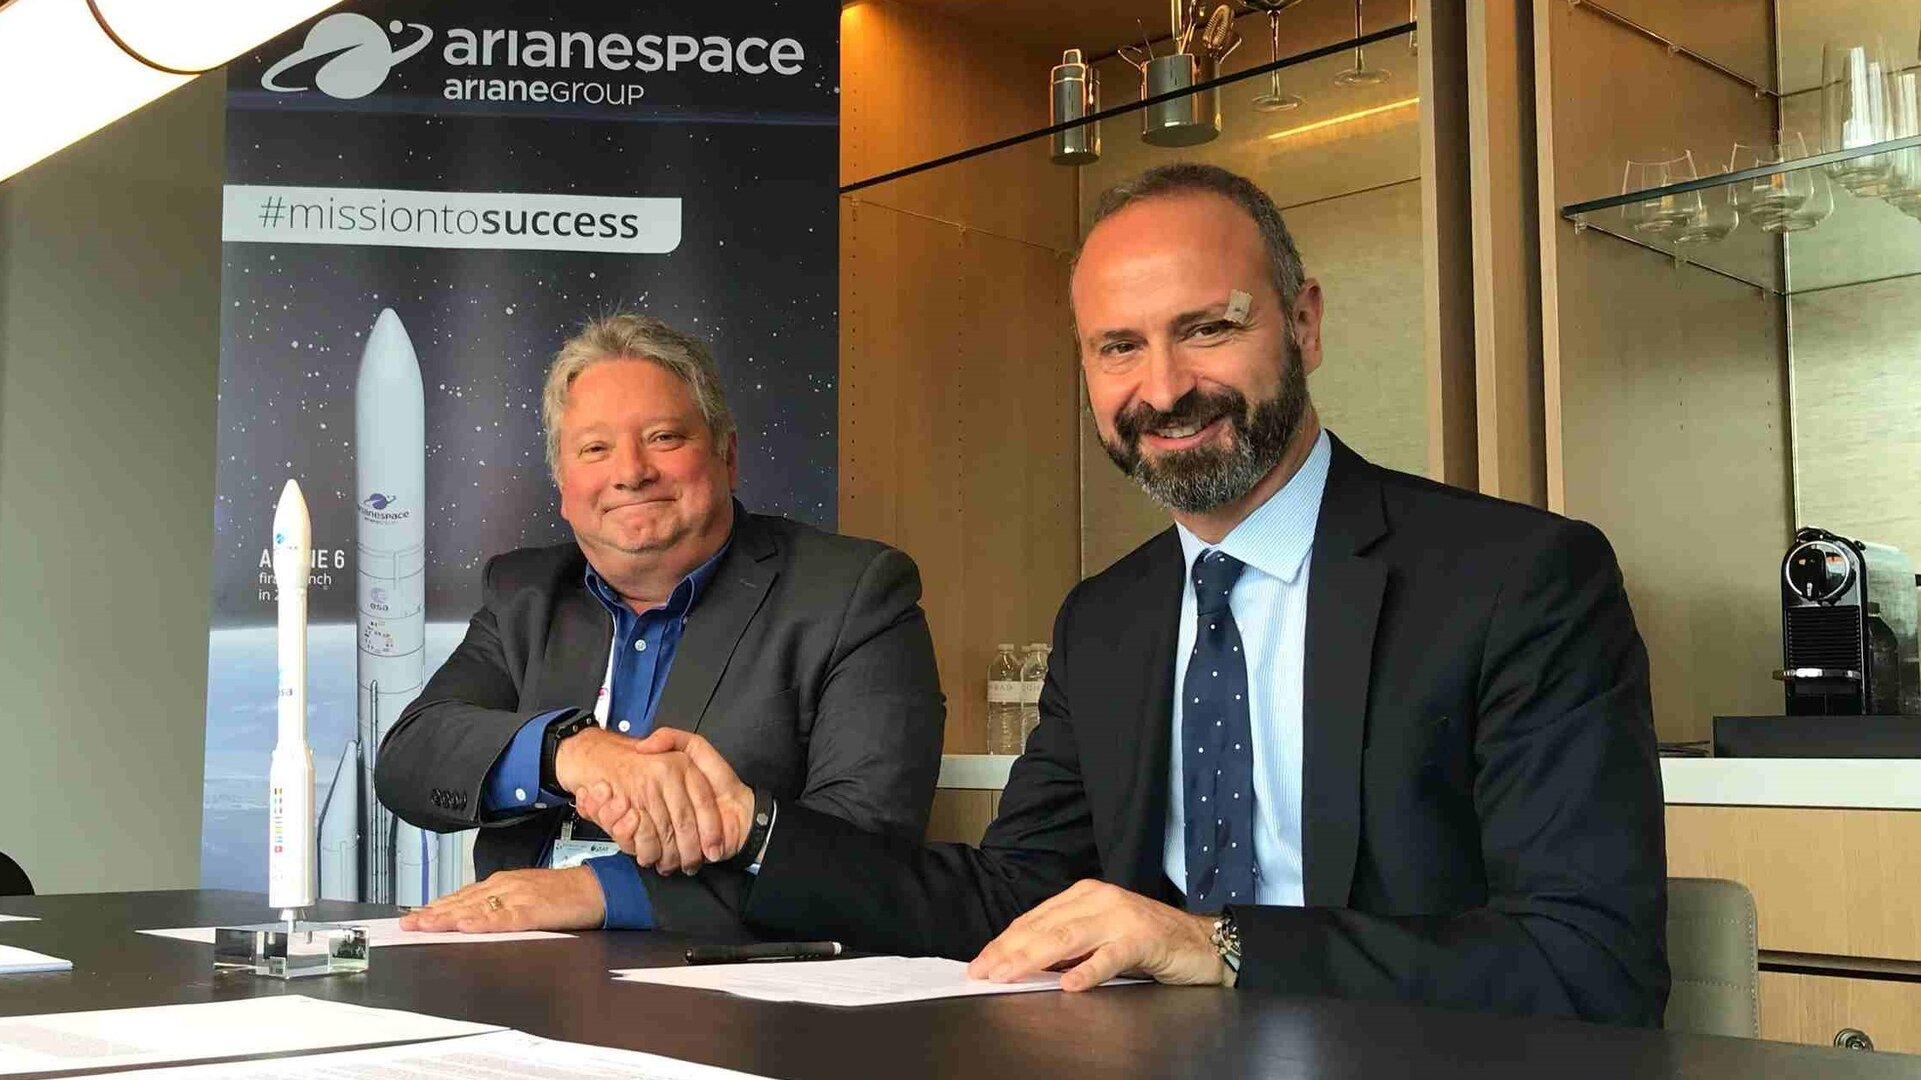 Peter Mabson of exactEarth (left) and Geoffroy Legros of Arianespace sign the launch contract for ESAIL